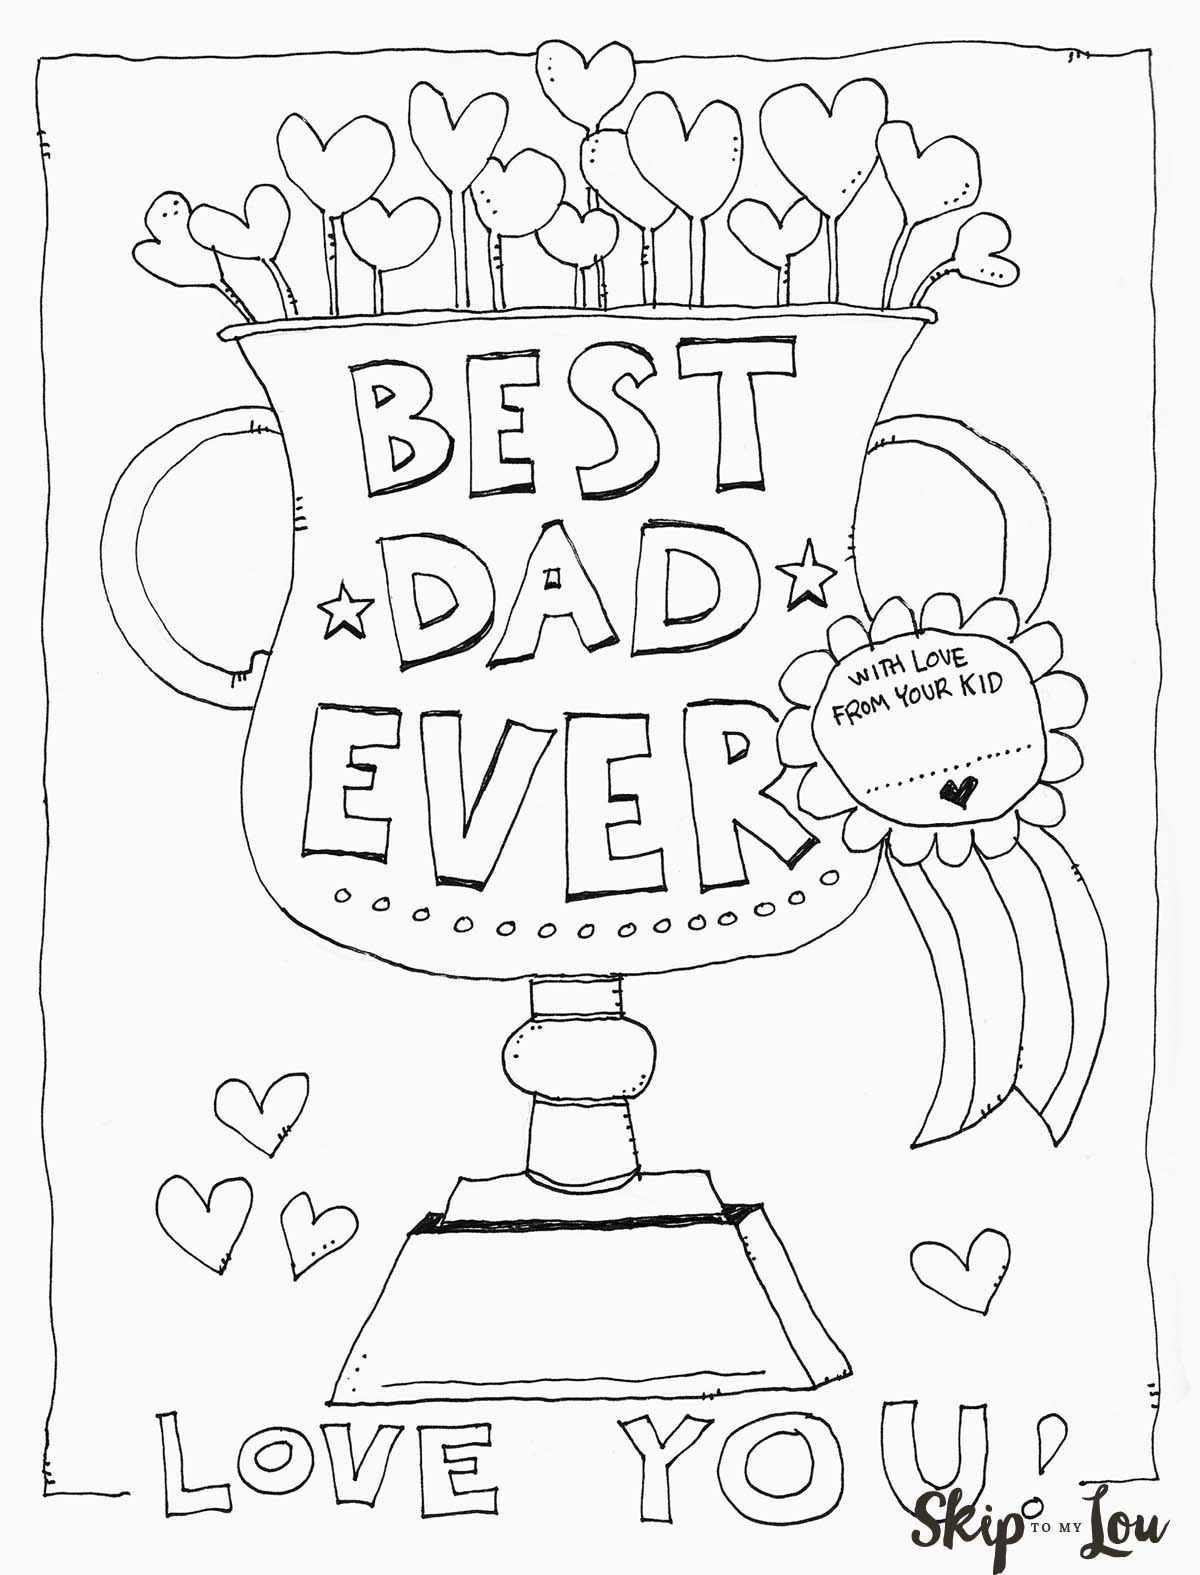 Dad Coloring Page | Father's Day | Kids Fathers Day Crafts, Fathers - Free Printable Fathers Day Coloring Pages For Grandpa